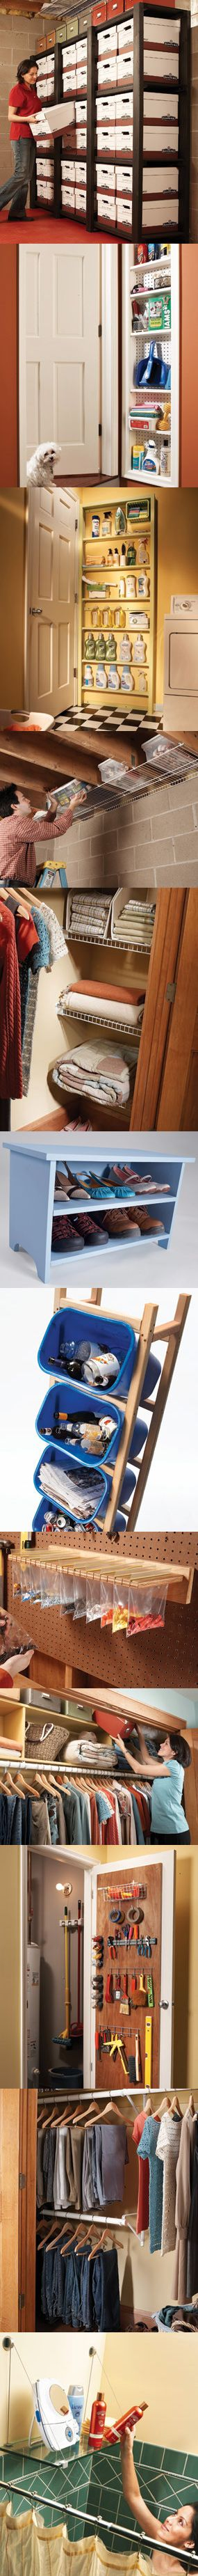 Learn 12 new solutions for storage space problems—everything from hidden shelves to shoe racks to recycling towers and more. ♥